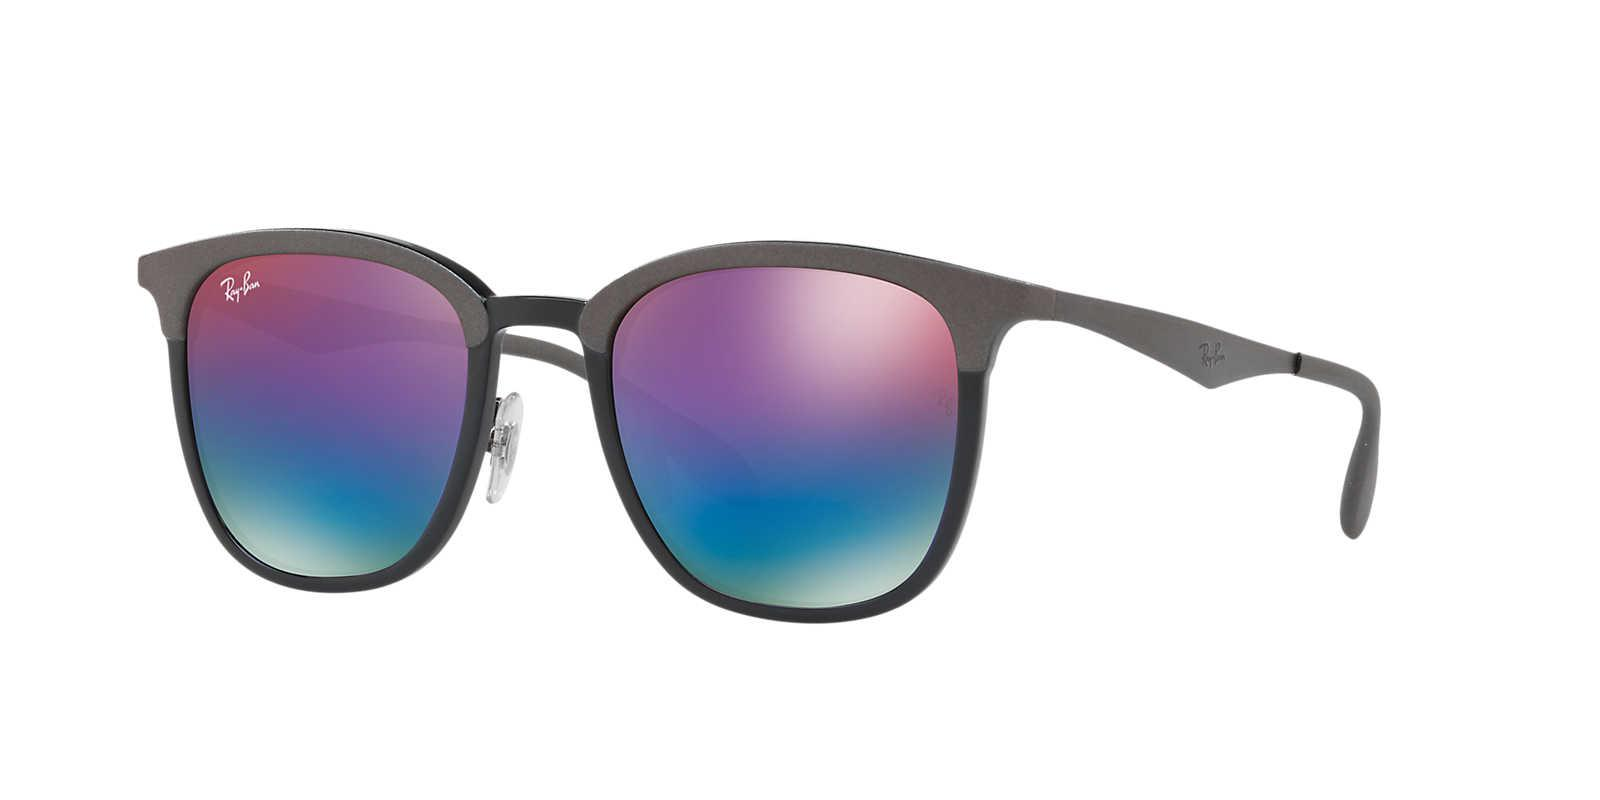 600f685a79 Ray-Ban Unisex Sunglass Rb4278 51 in Green - Lyst